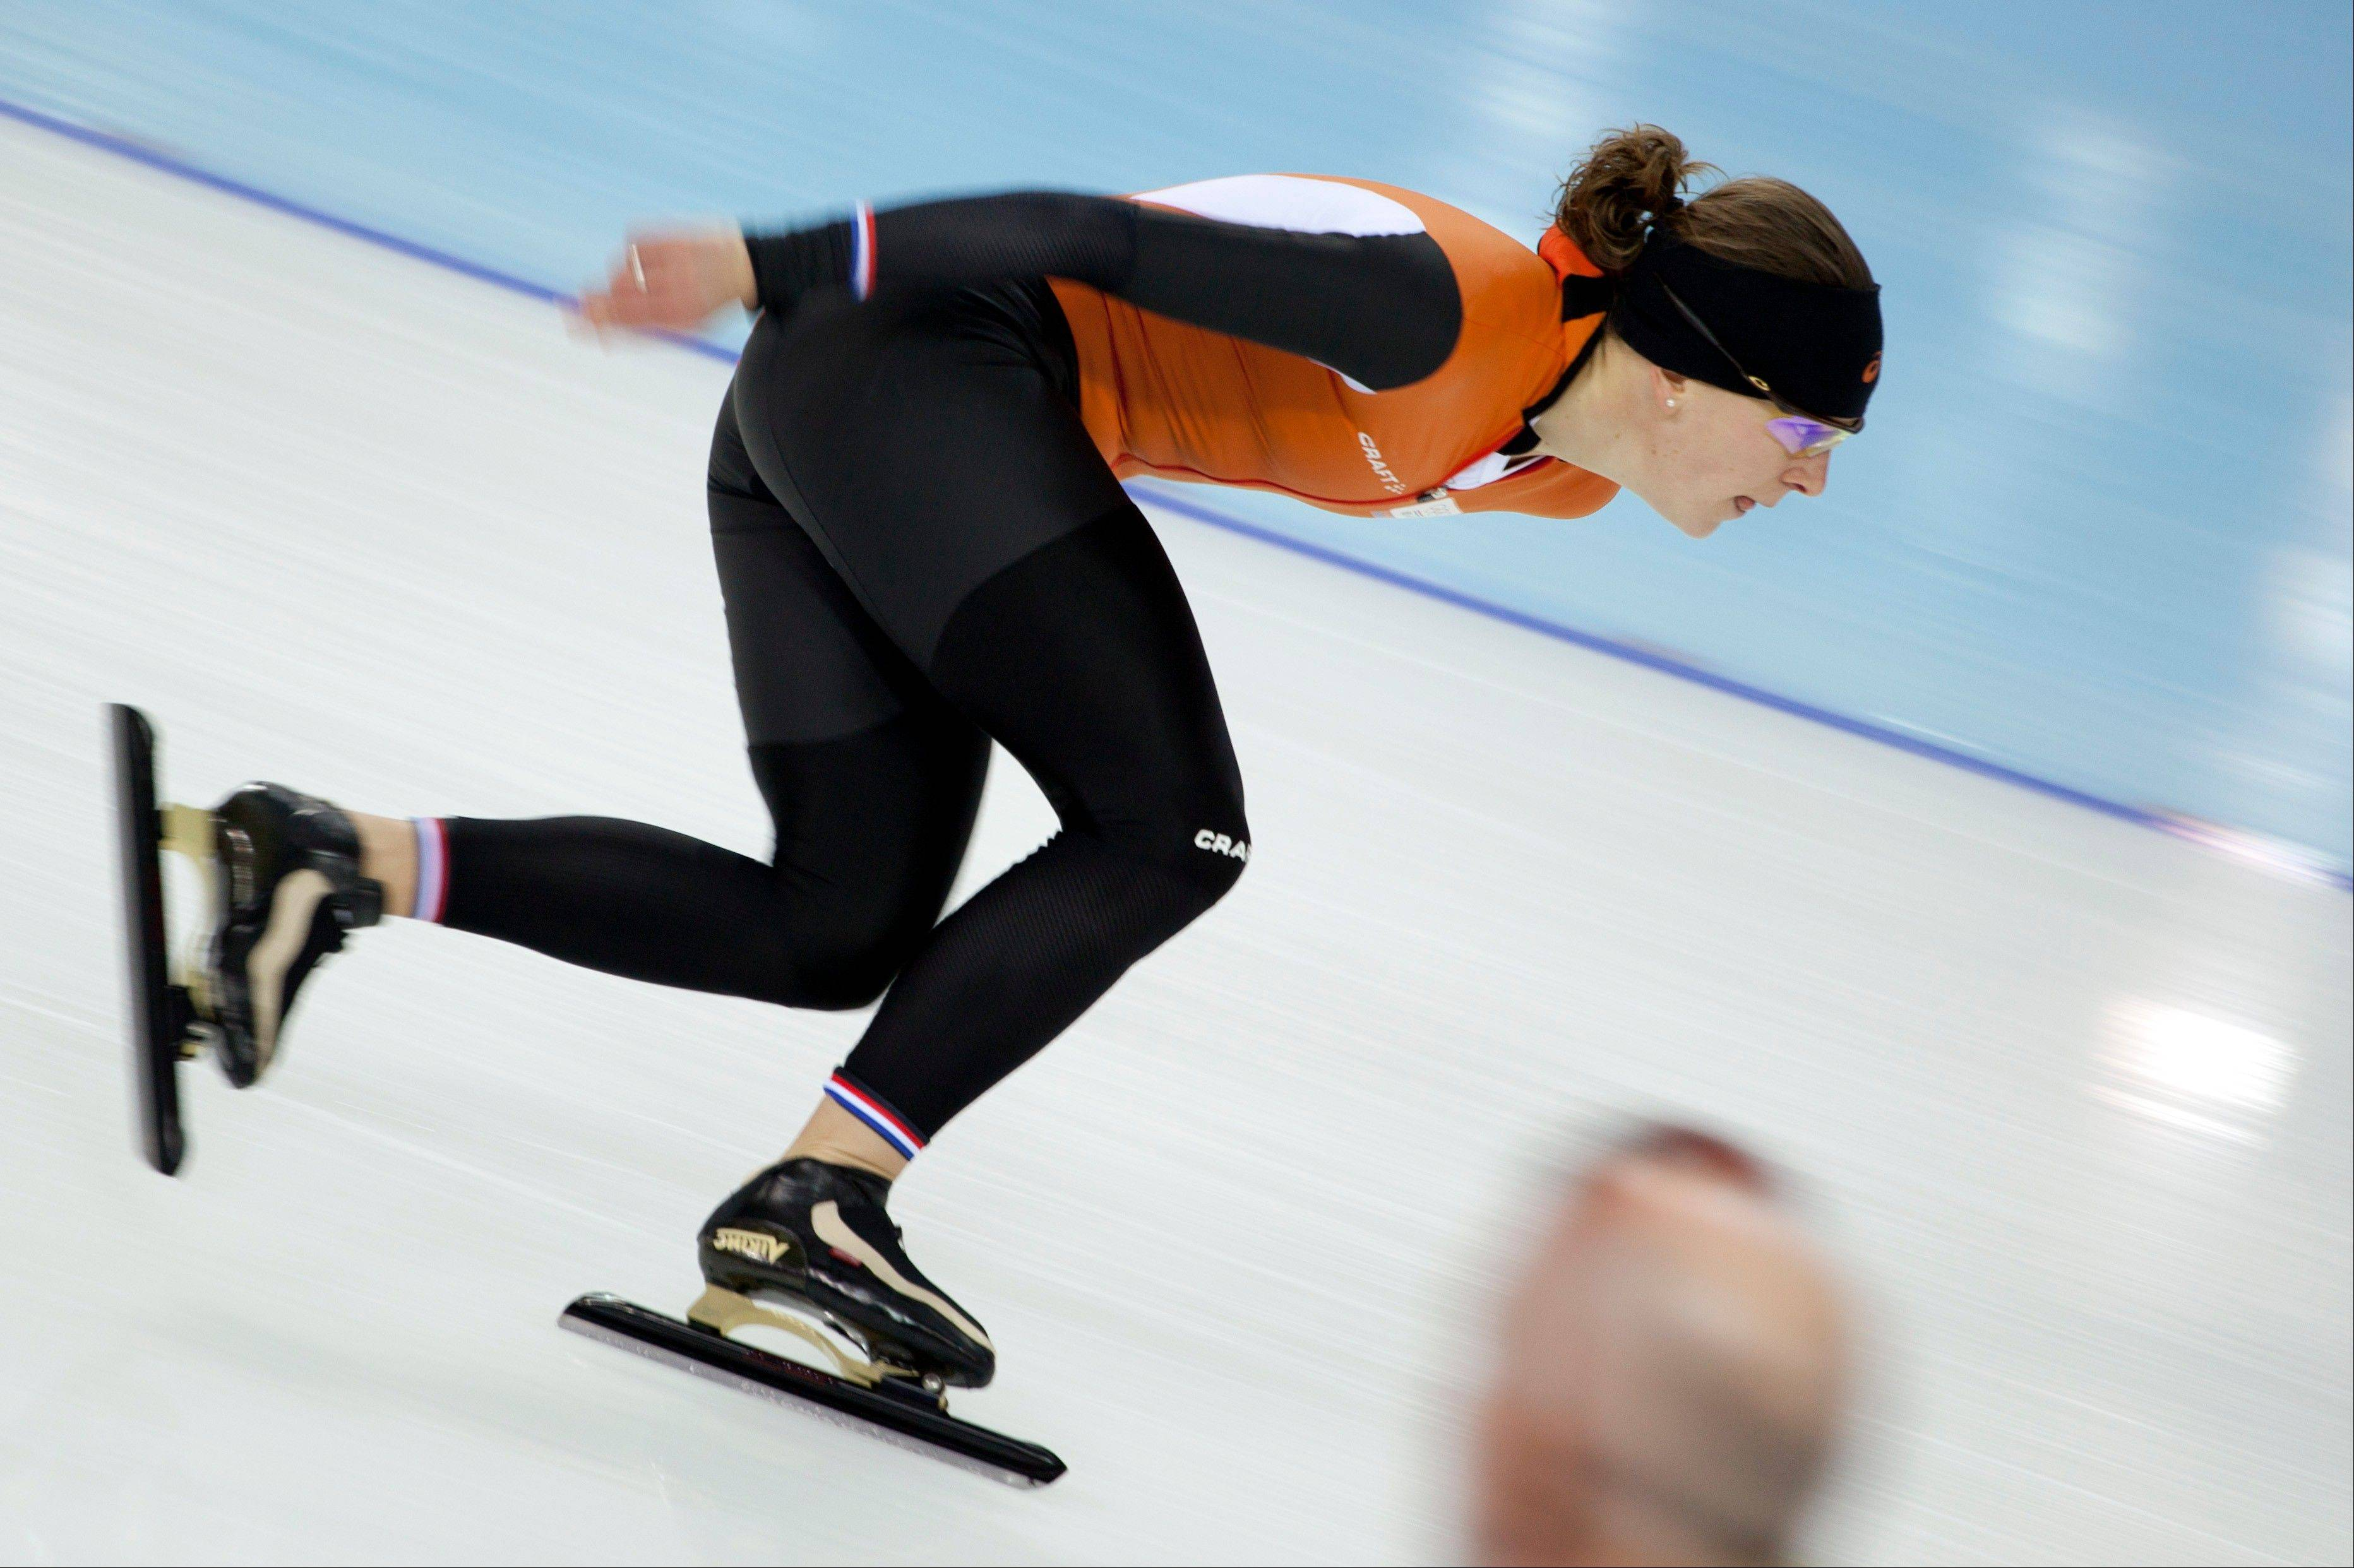 Speedskater Ireen Wust of the Netherlands trains Thursday at the Adler Arena Skating Center during the 2014 Winter Olympics in Sochi, Russia.